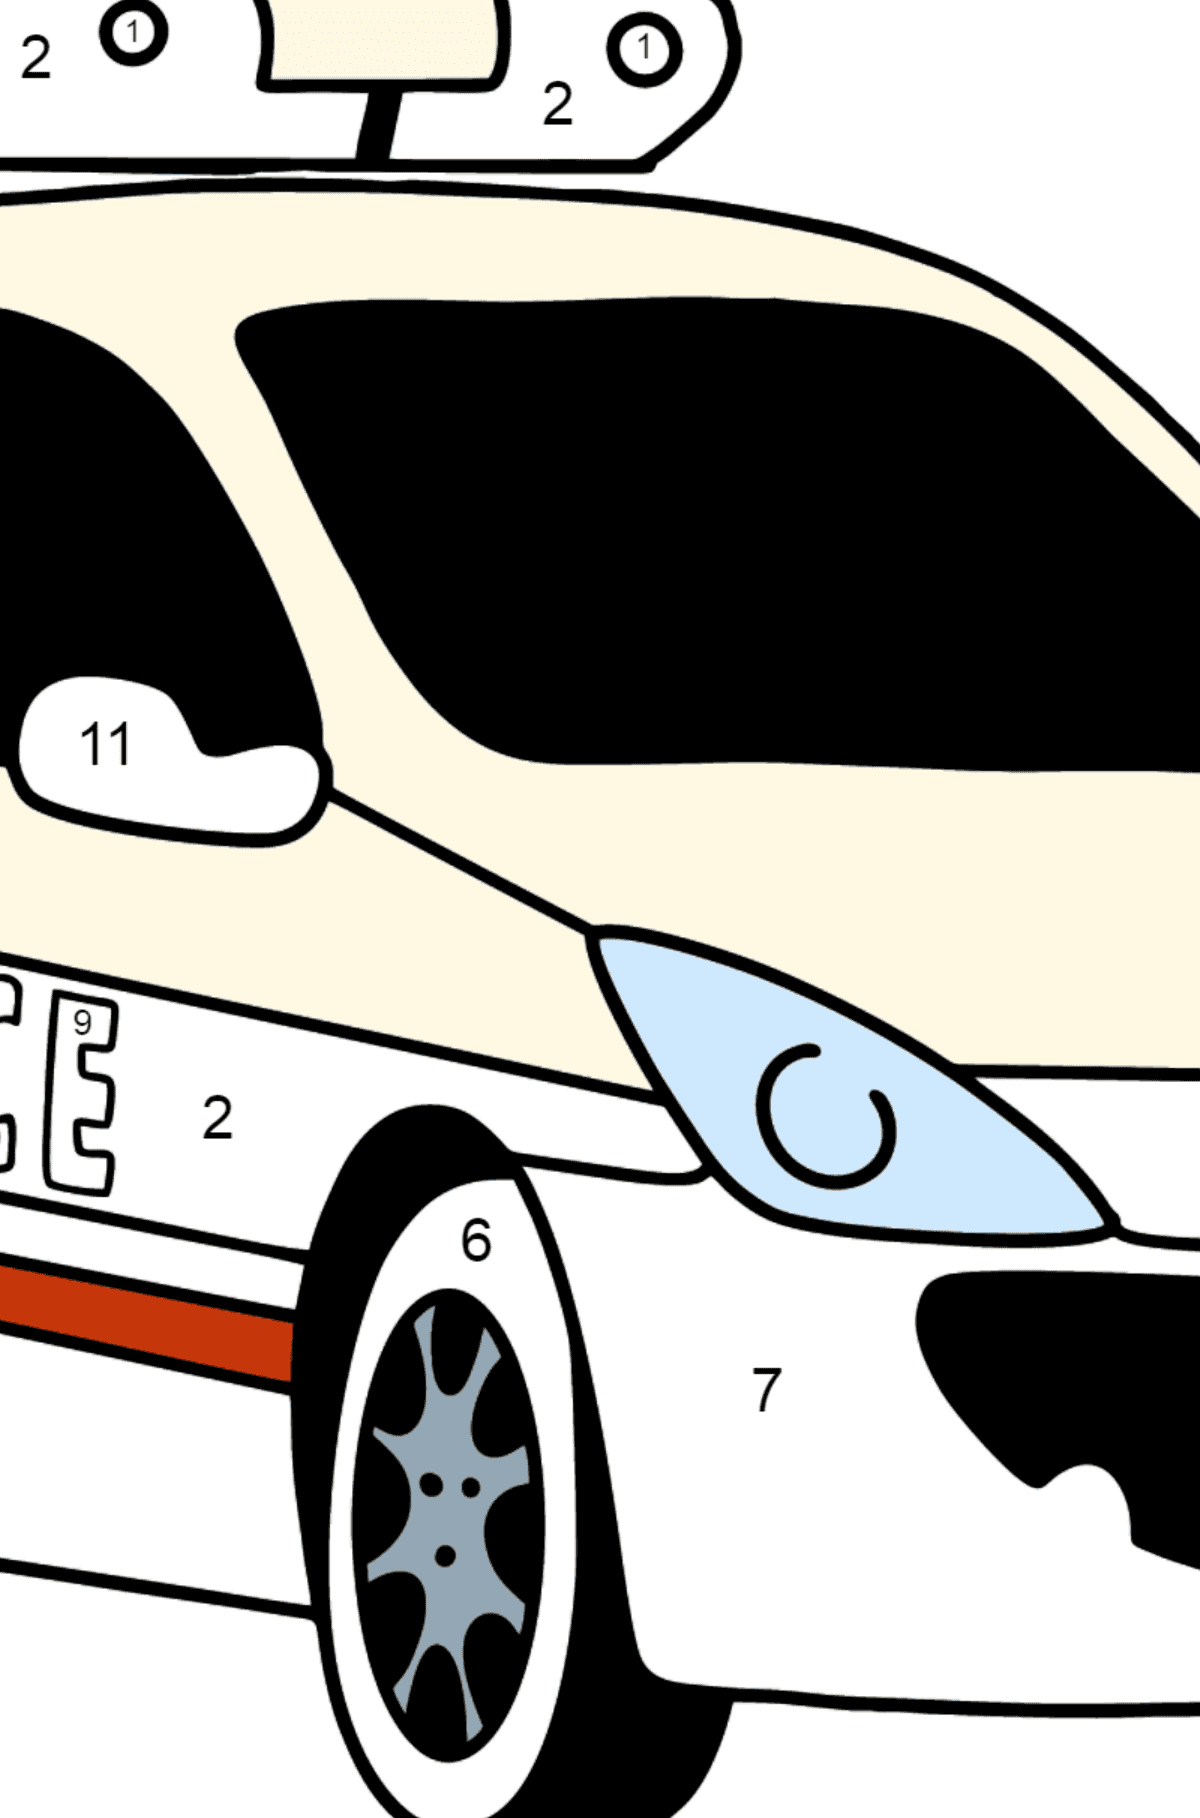 Police Car in France coloring page - Coloring by Numbers for Kids